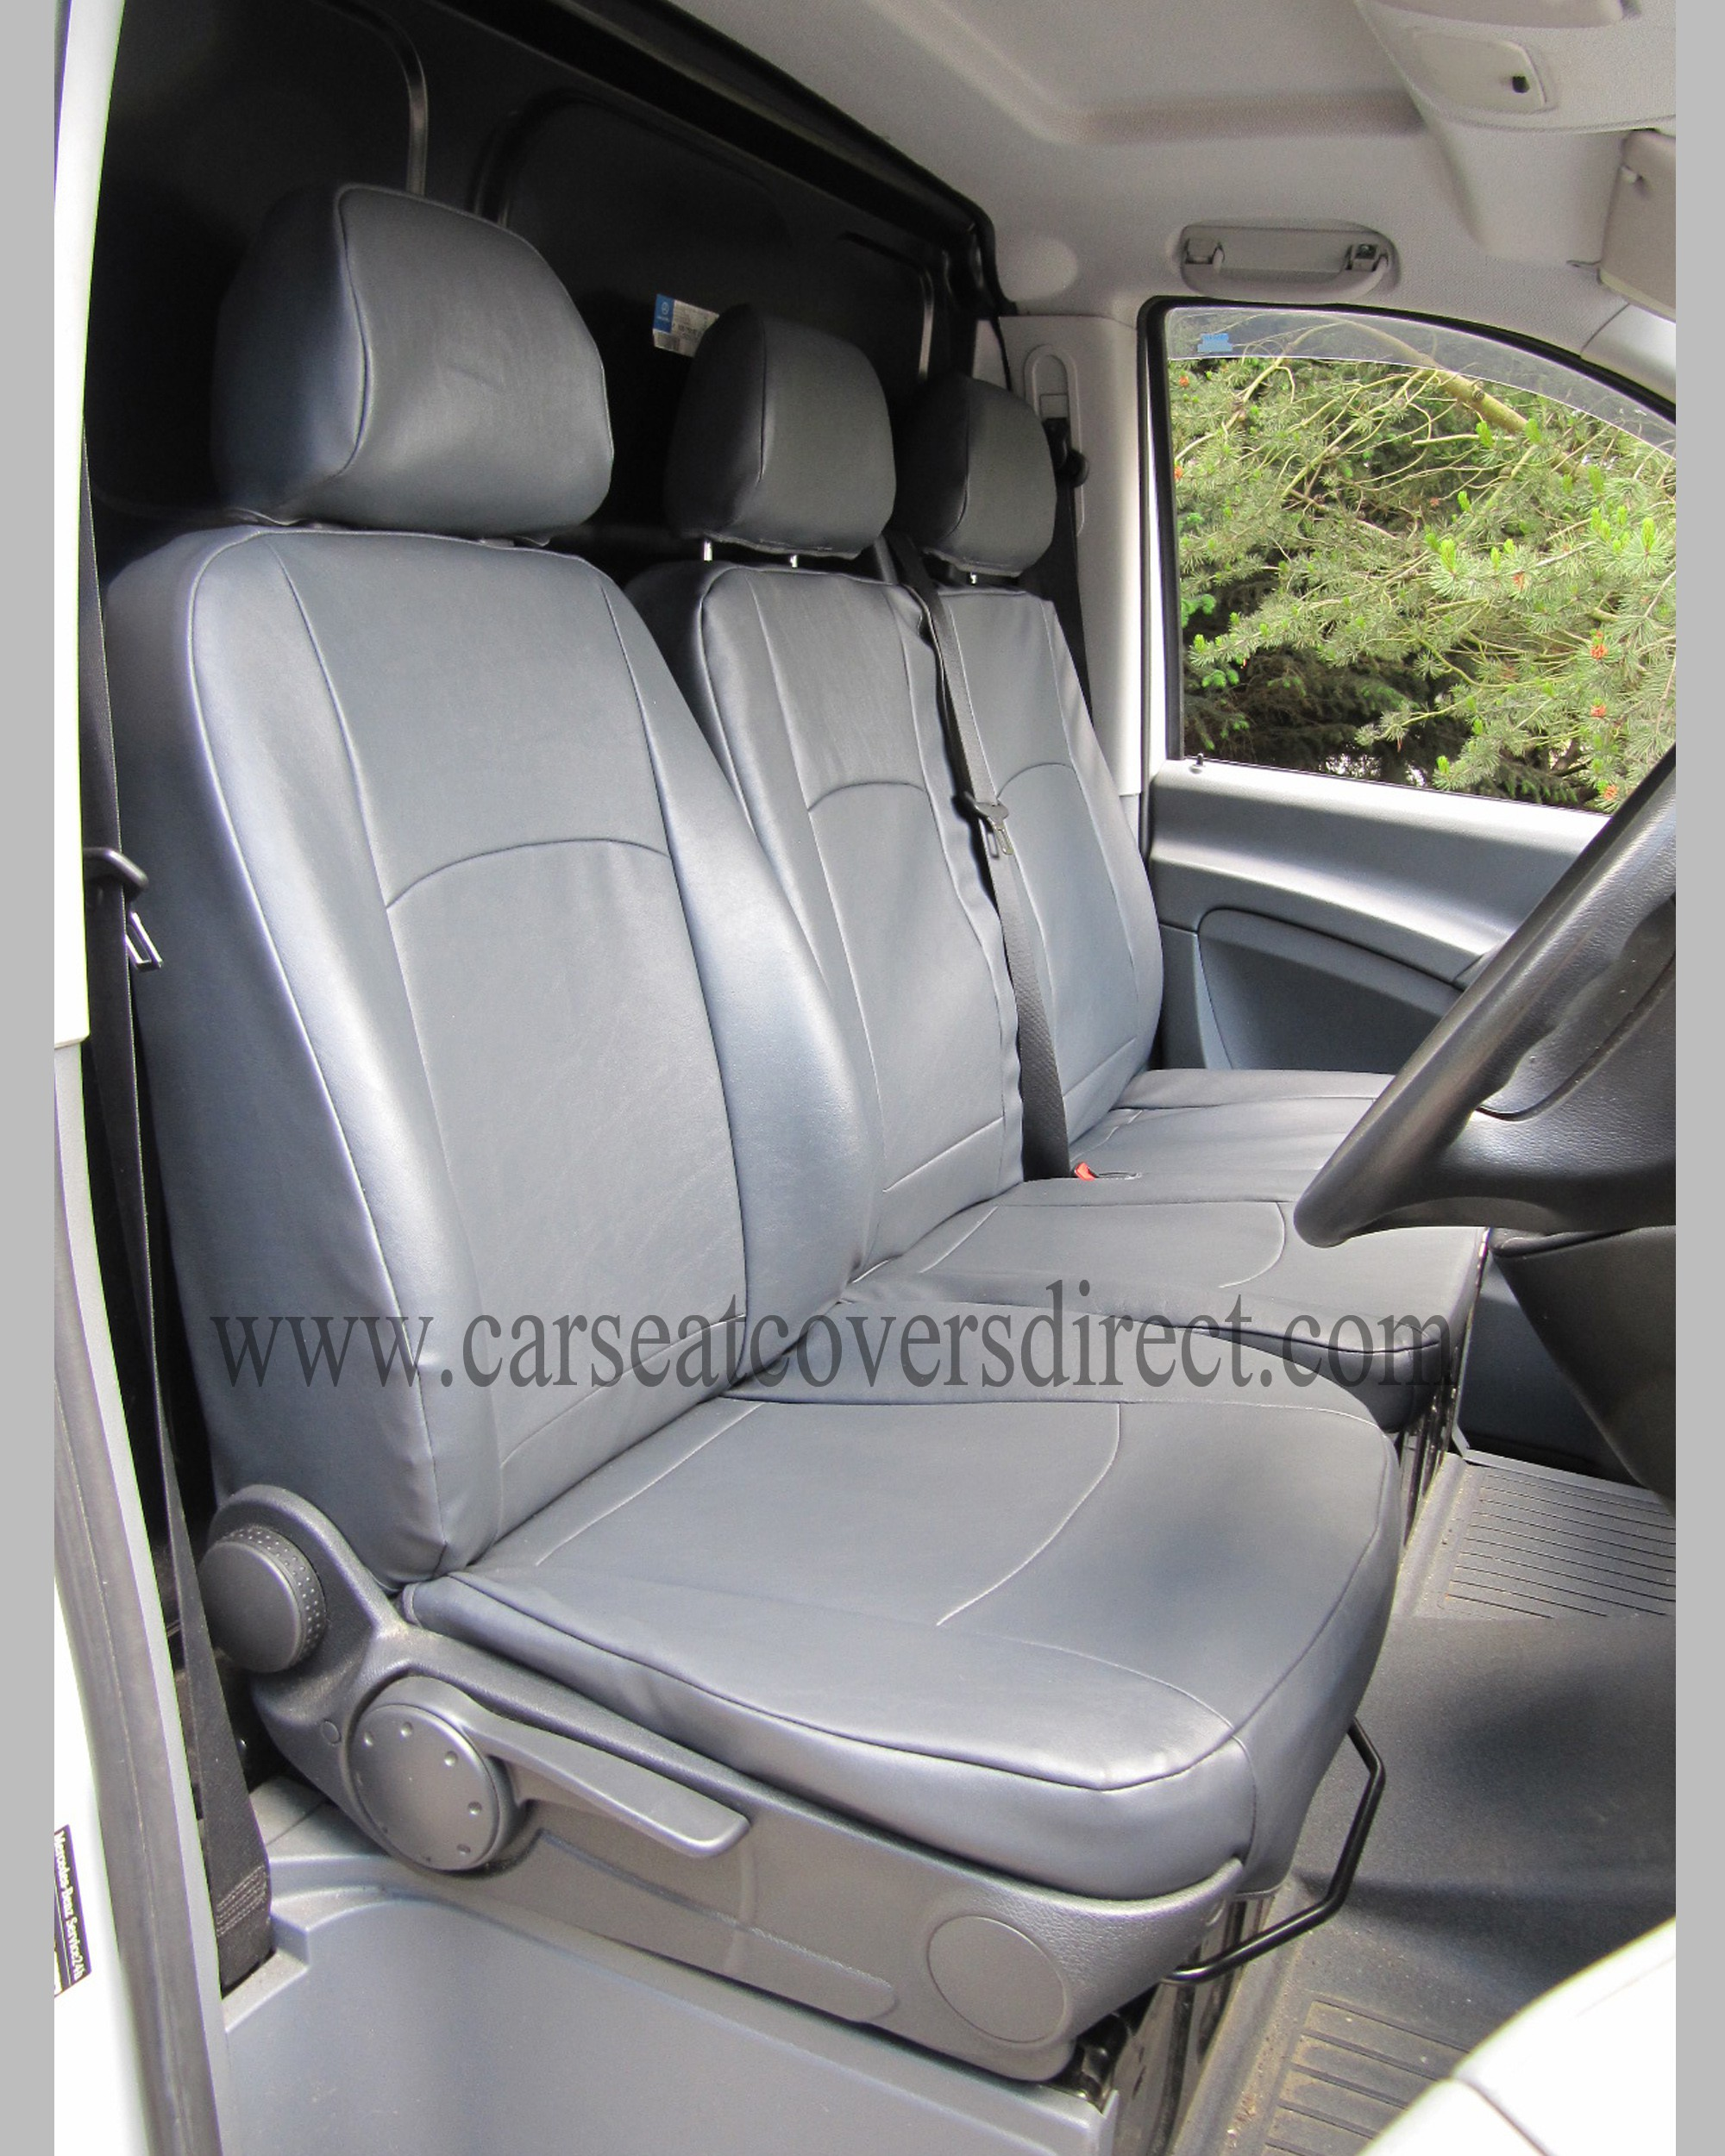 MERCEDES VITO VAN seat covers